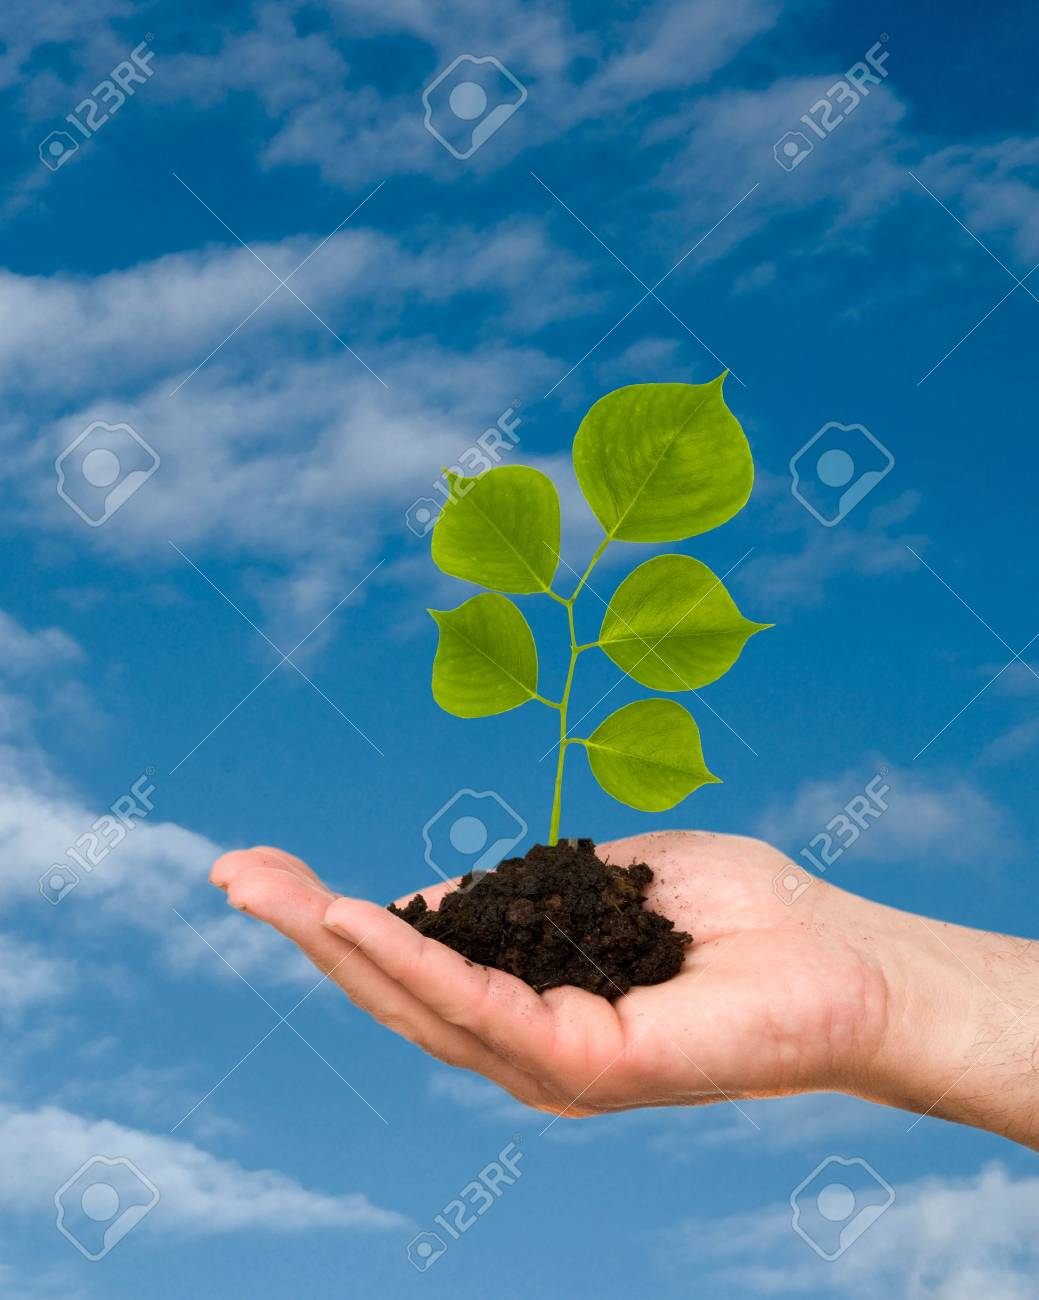 A shoot in palm as a symbol of nature protection Stock Photo - 4974630